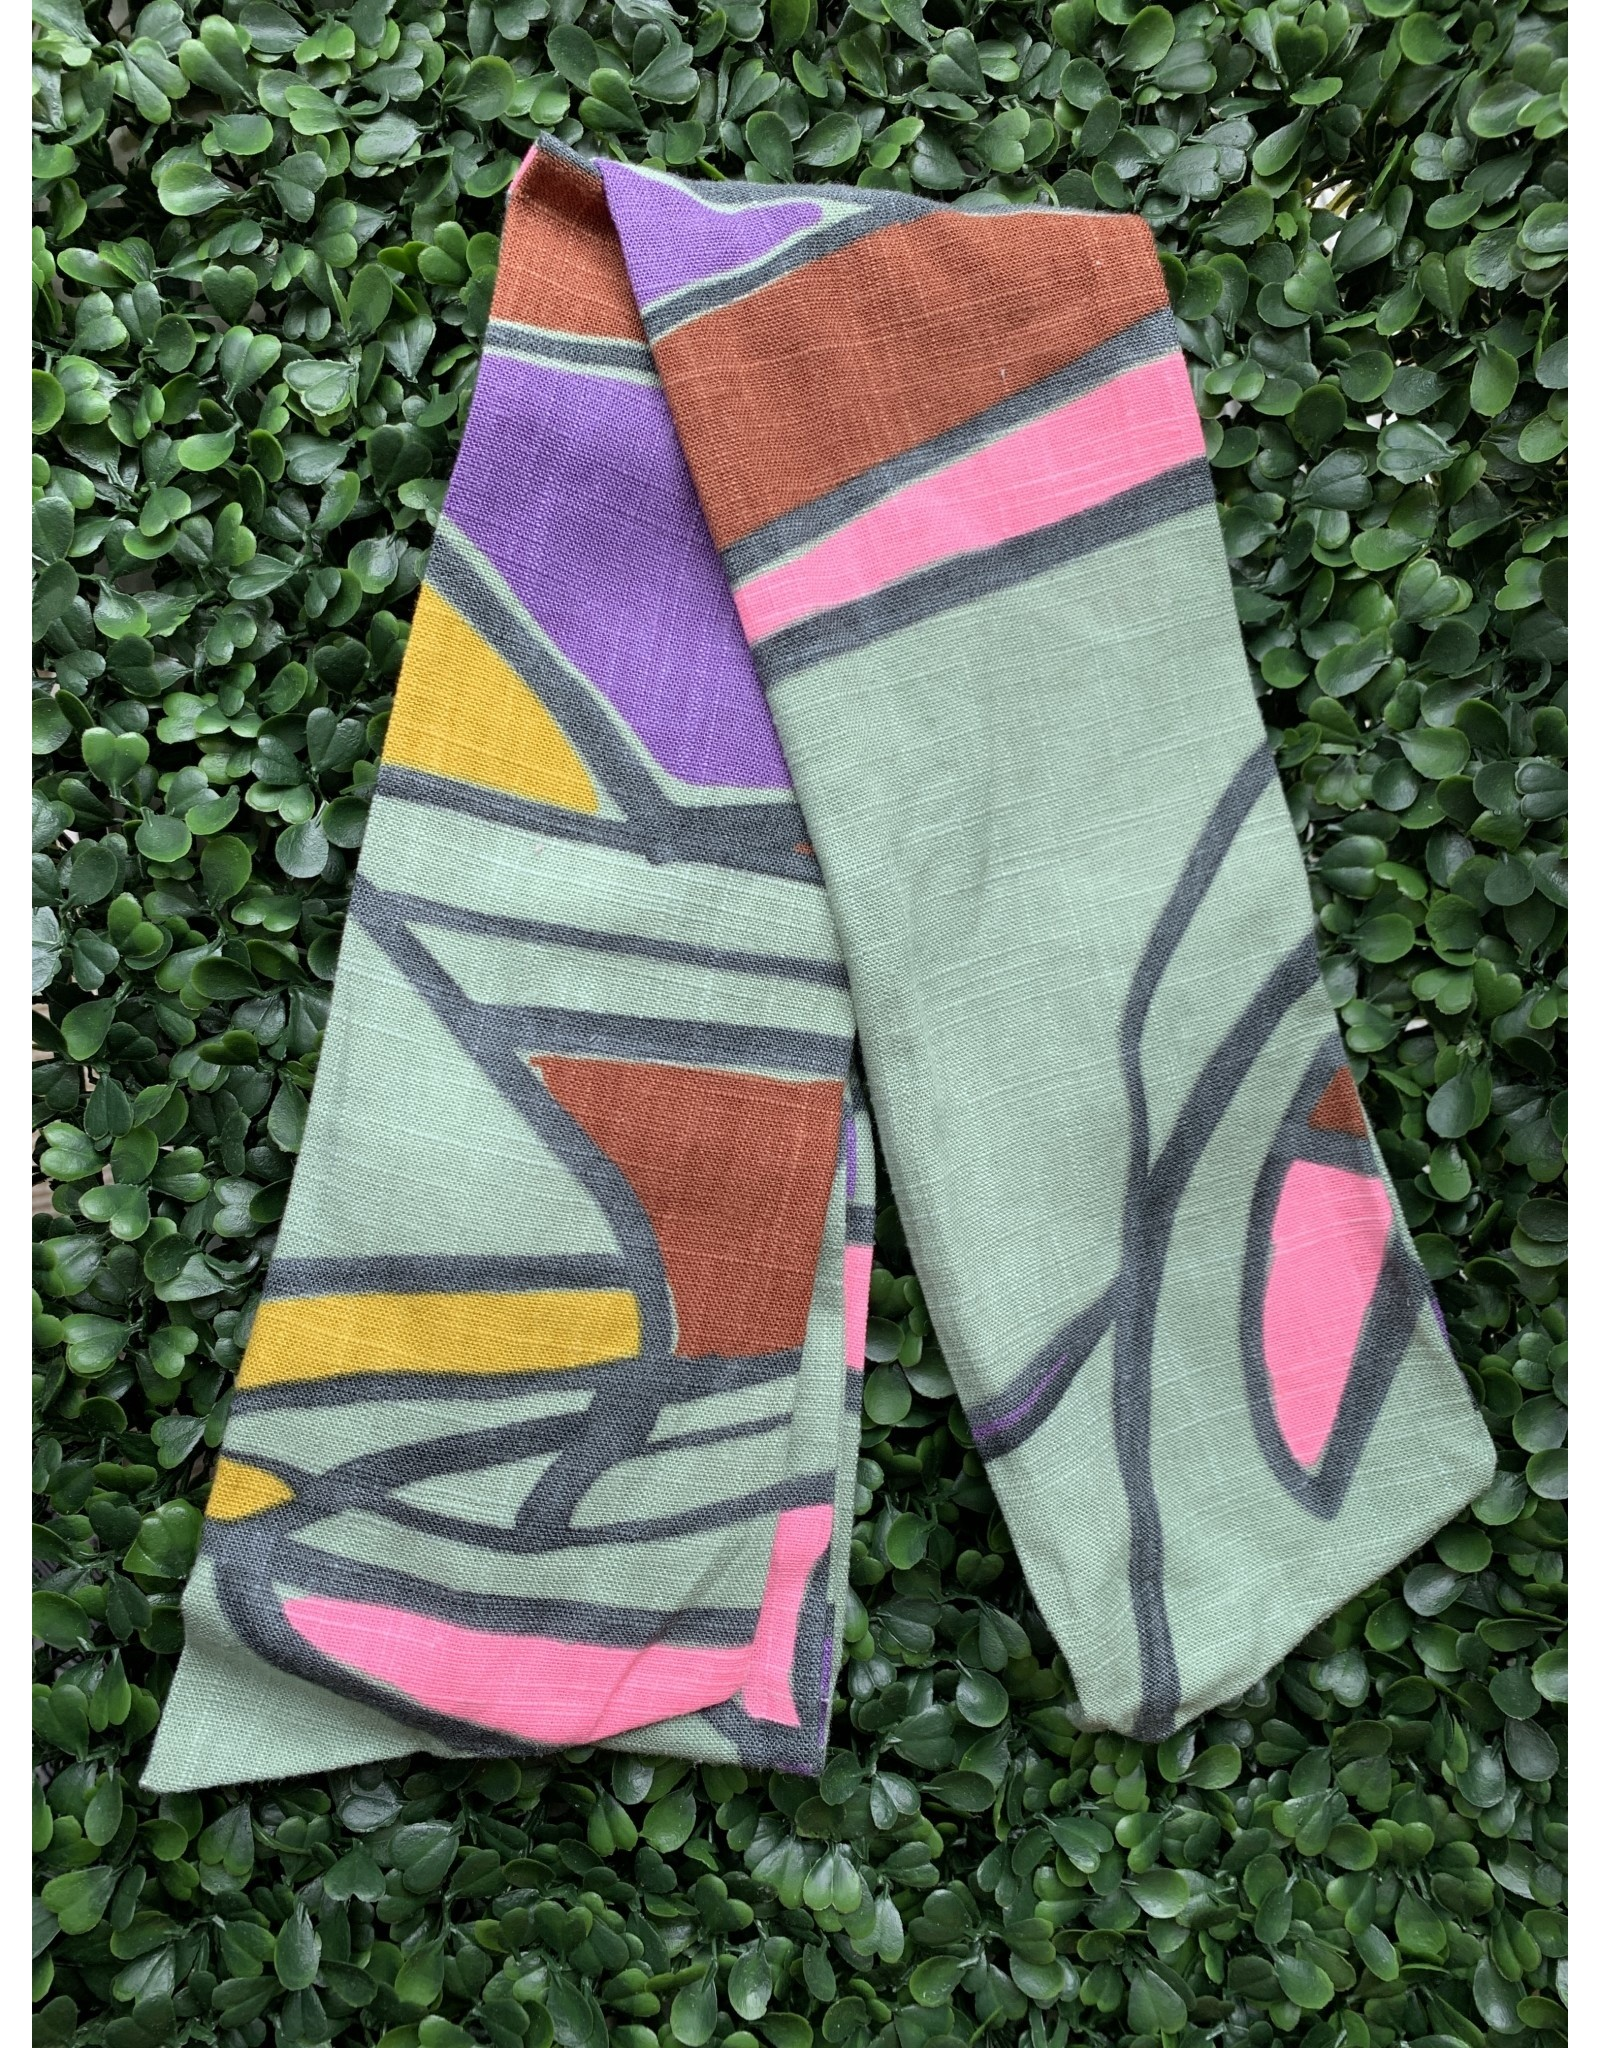 Cotton Wired Head Scarf in Sage, Pink, and Rust Abstract